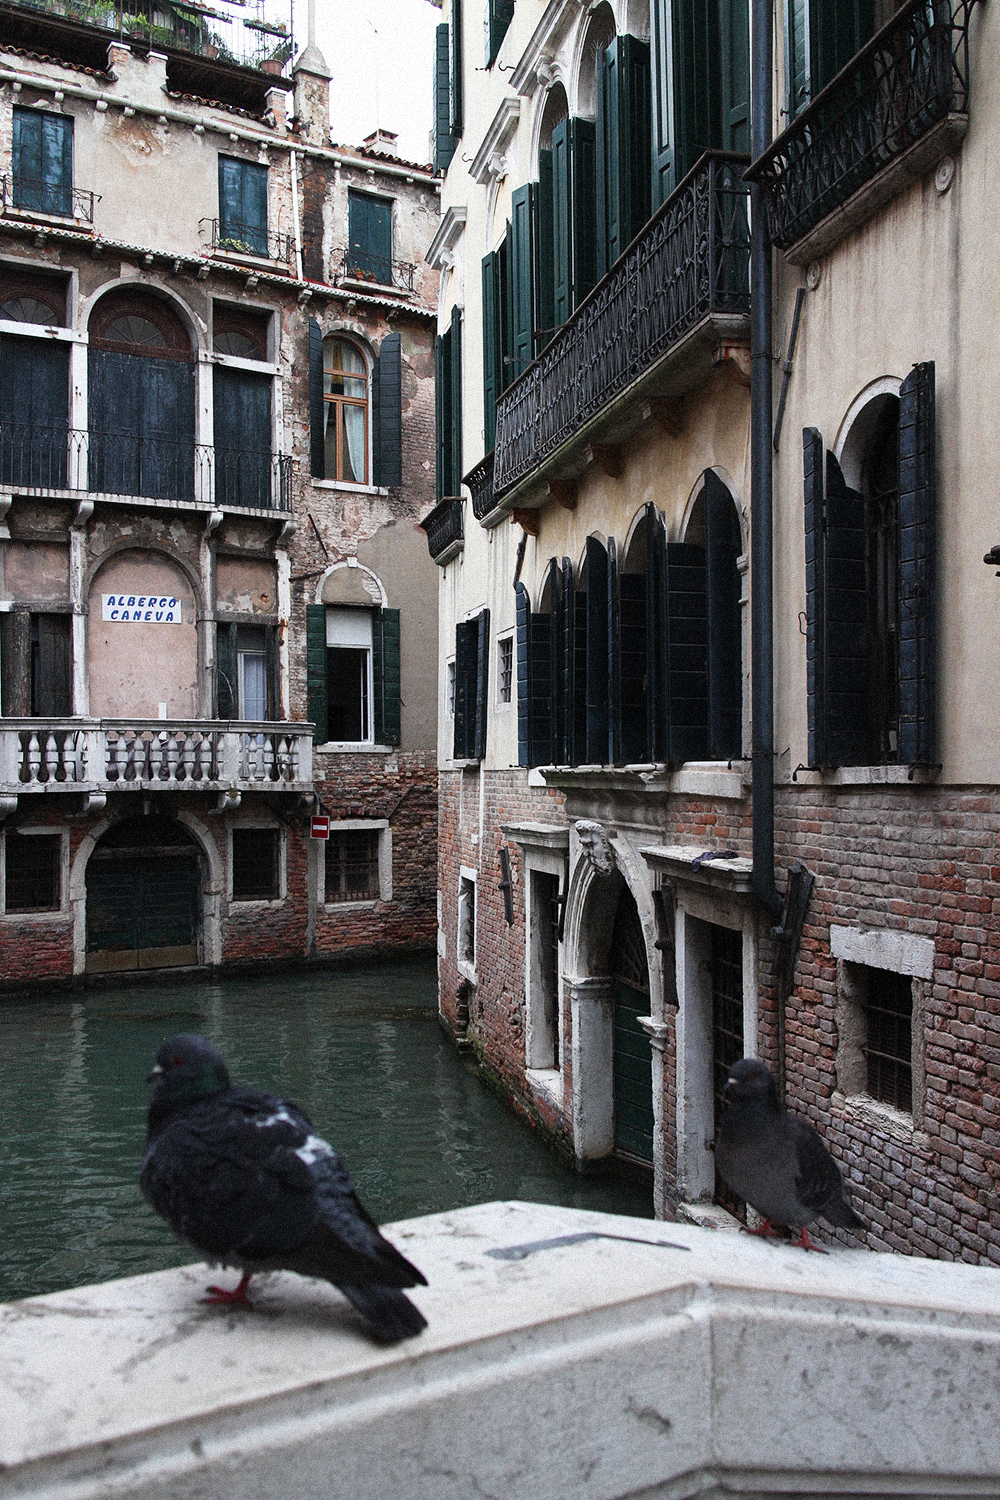 IHEARTALICE.DE – Fashion & Travel Blog: Venice/Italy Travel & Food Diary / Globetrotter Blog